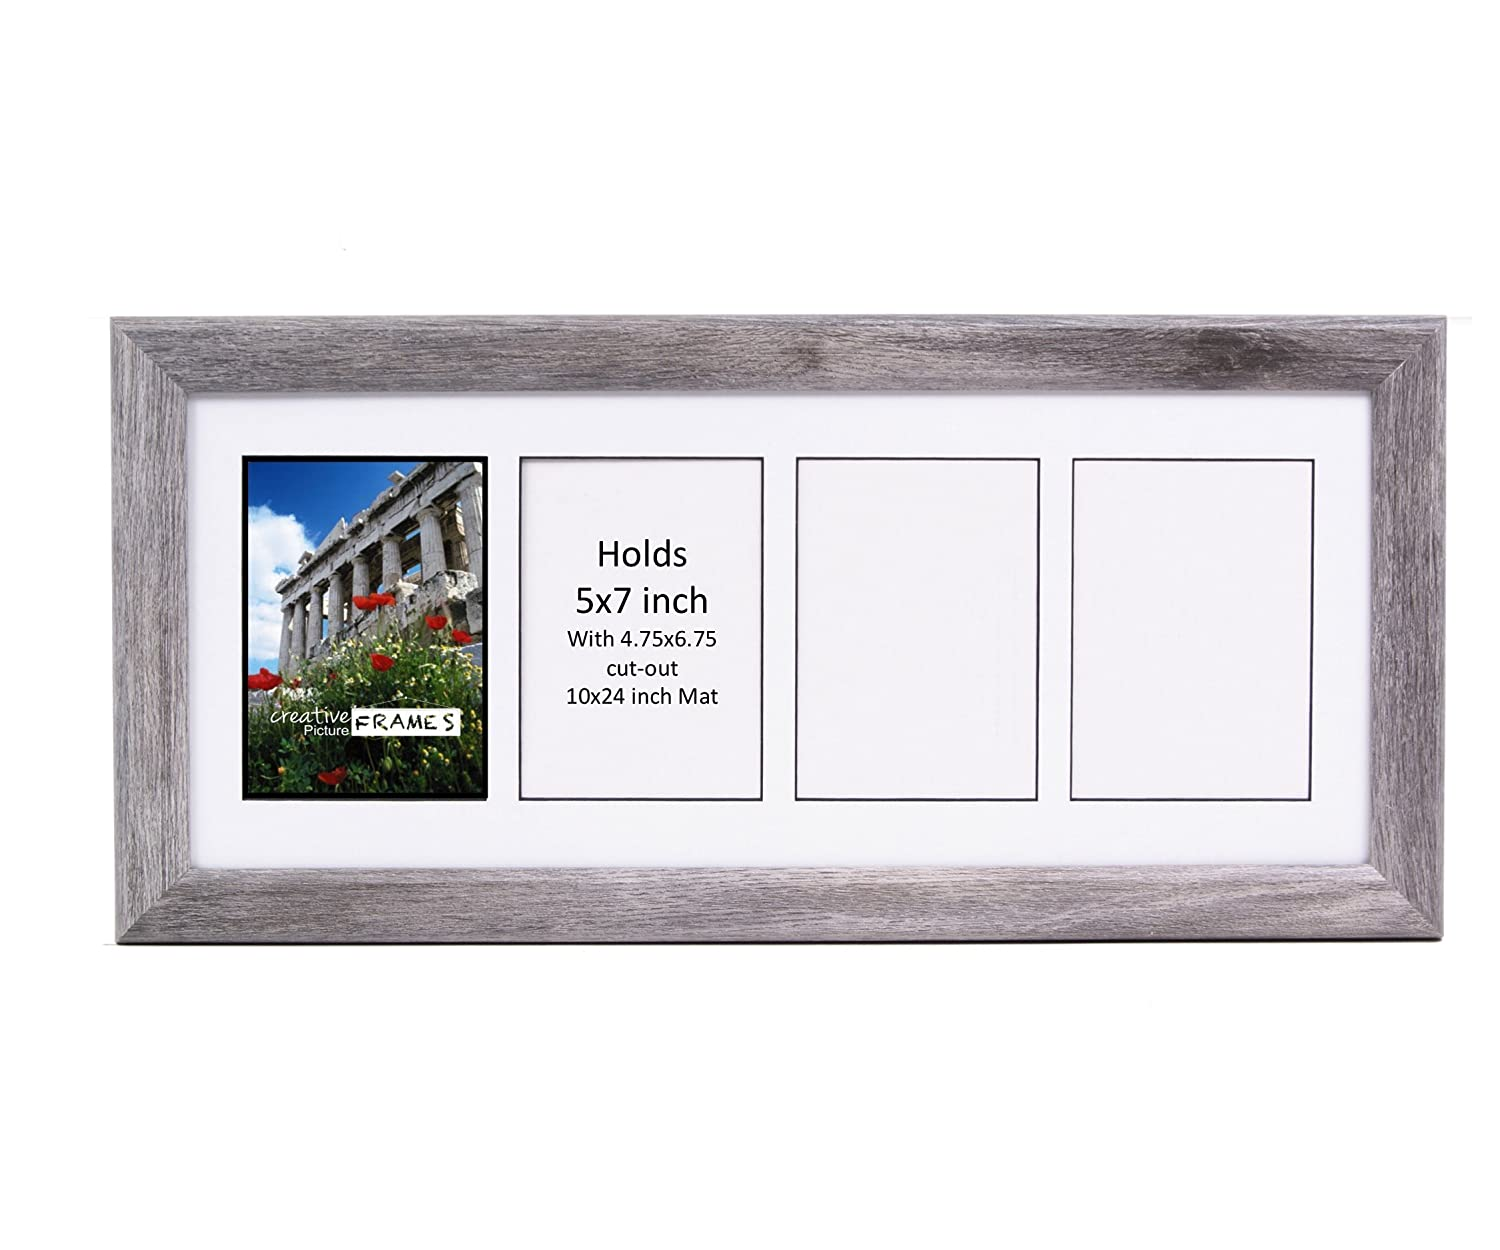 CreativePF - 2- 5 by 7 inch Opening Black Picture Frame with 10x12-inch Black Mat Collage including Full Strength Glass, Alphabet Photography Creative Picture Frames cpf5x7frame12bk-2b